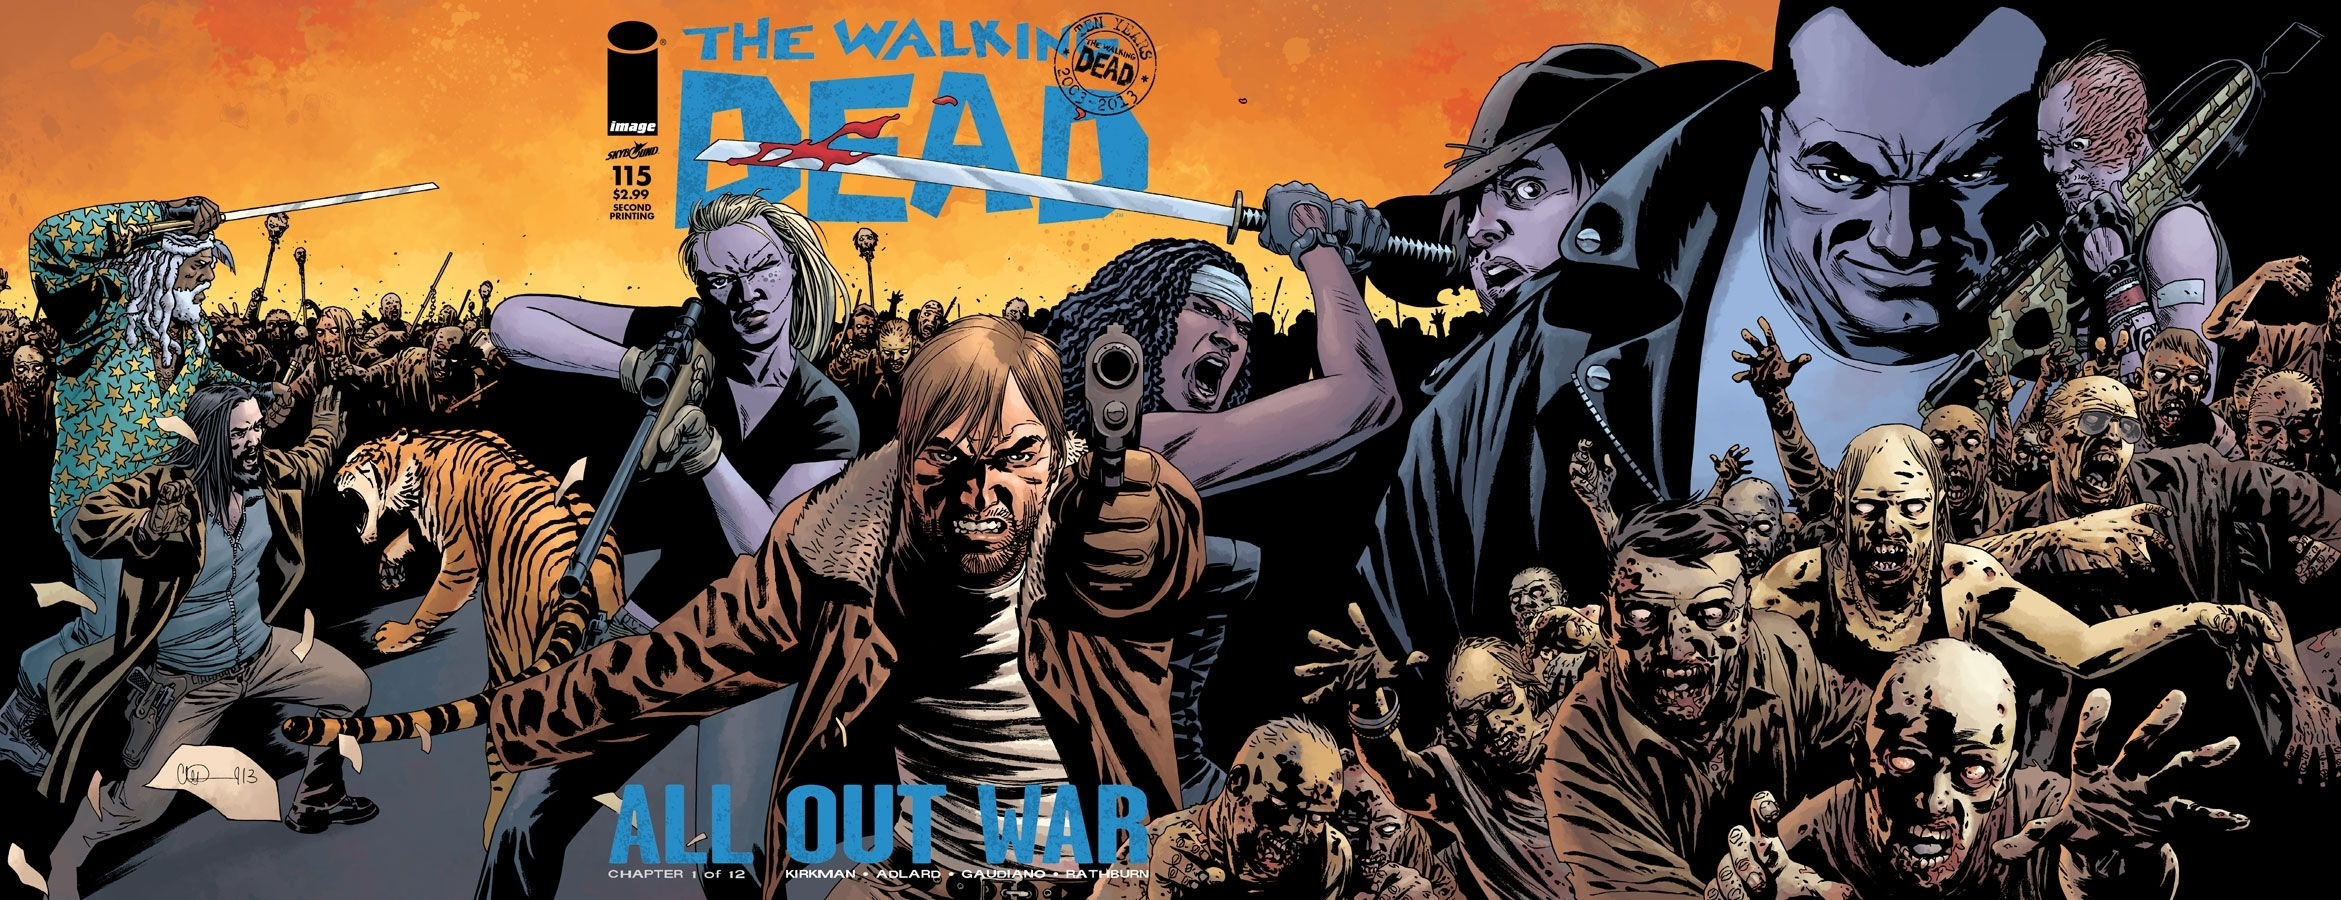 image comics | the walking dead #115 sells out of bestselling print